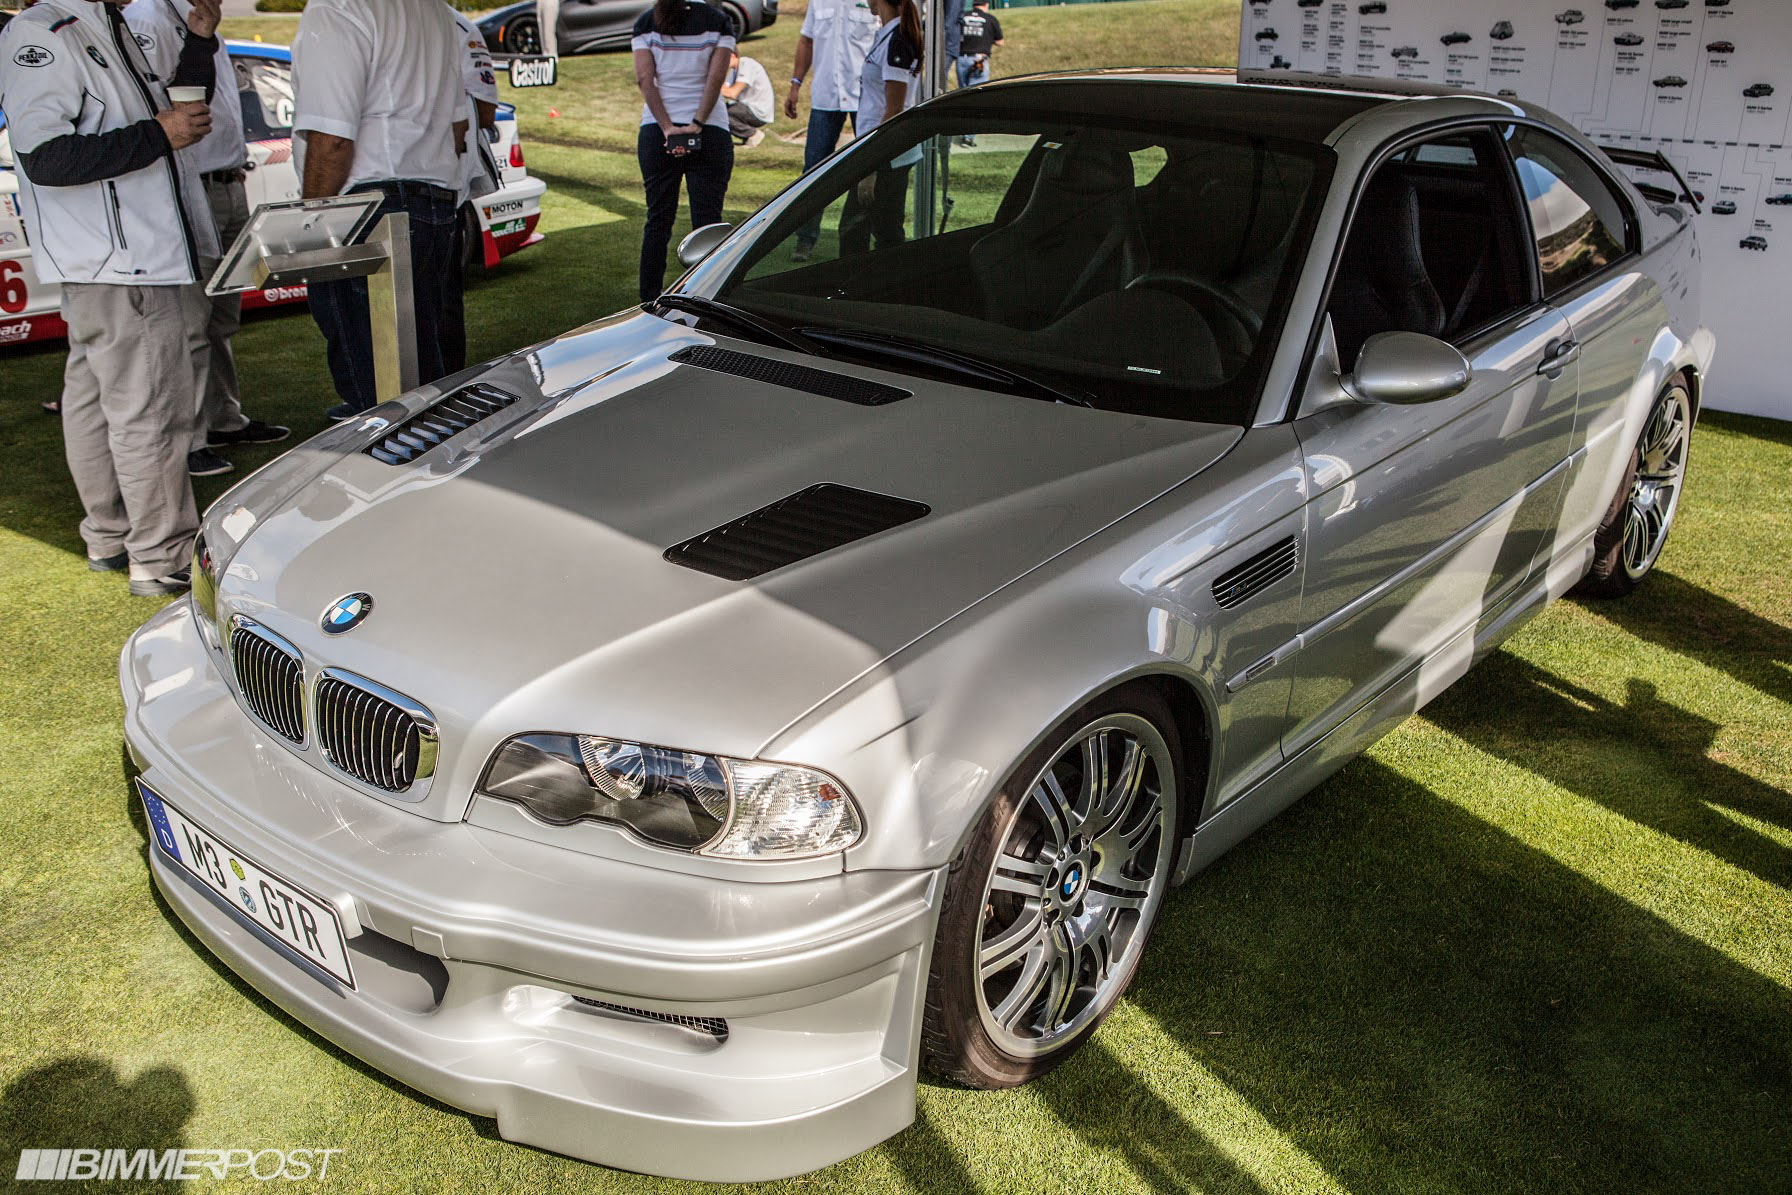 E46 M3 Gtr Race And Road Car Presented At Pebble Beach Live Photos Added Bmw 3 Series And 4 Series Forum F30 F32 F30post